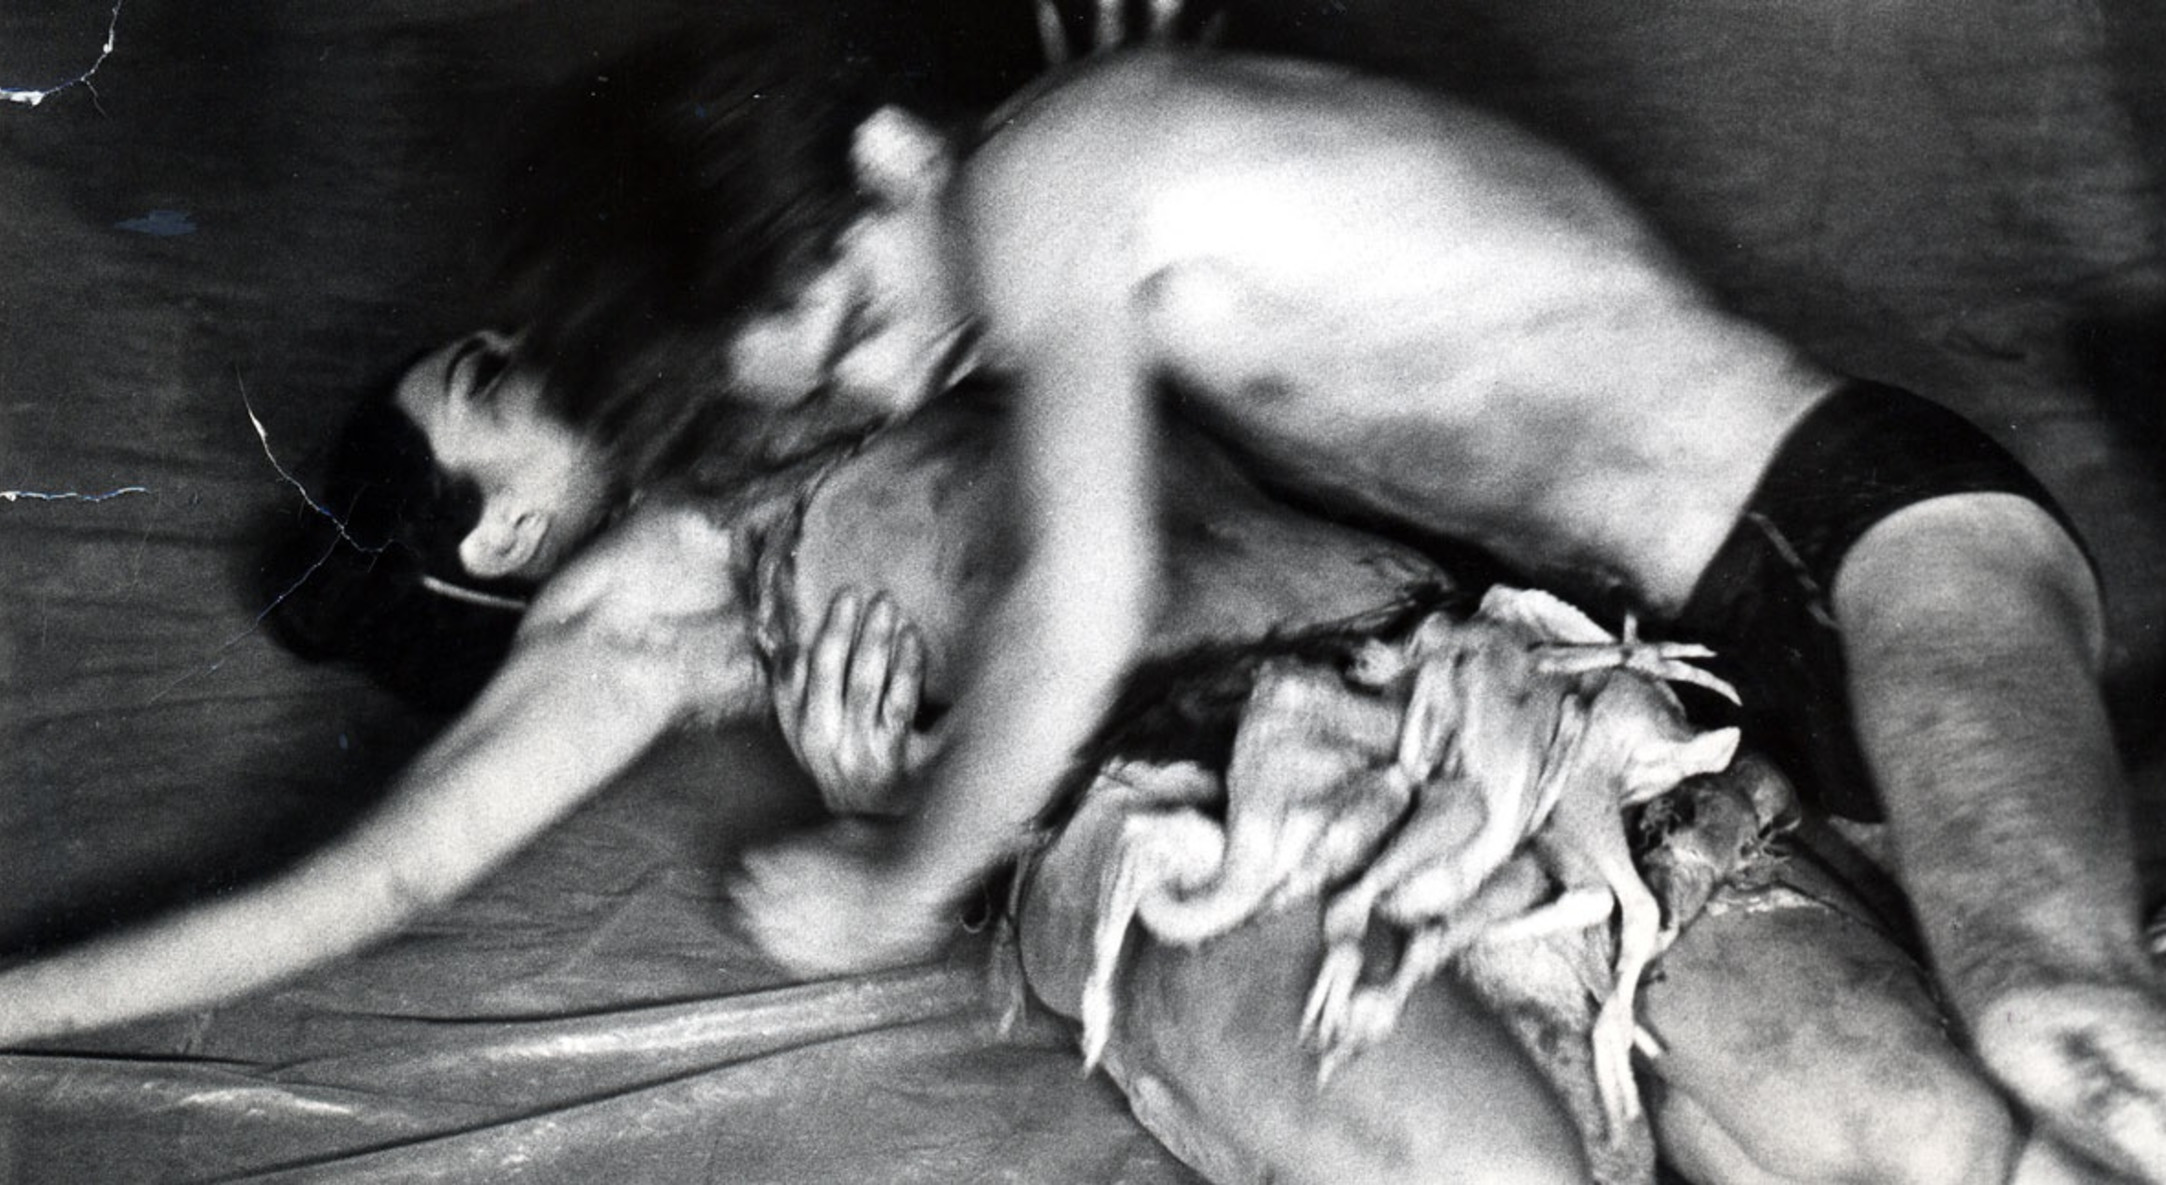 Detail of Carolee Schneemann, Meat Joy, 1964, Silver print, Framed: 23 3/4 x 20 1/4 in, 60.3 x 51.4 cm